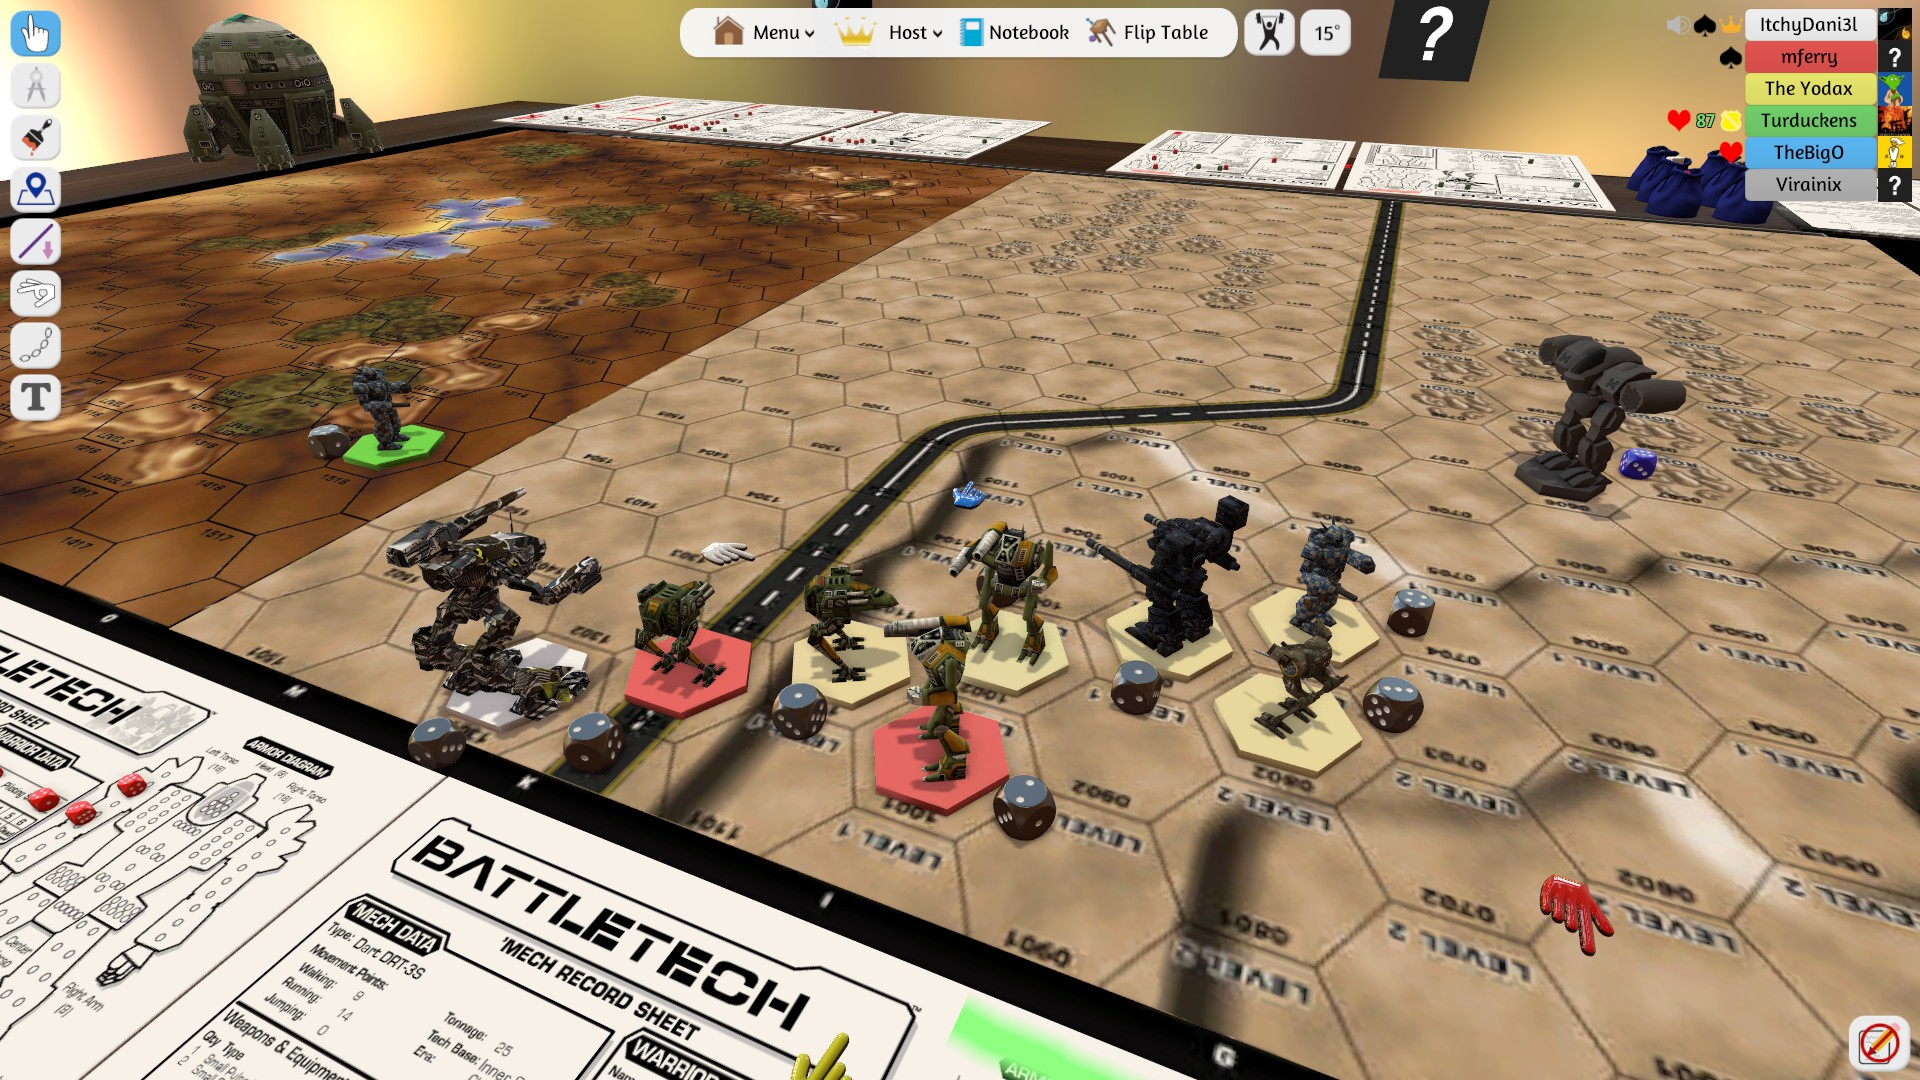 did you know? tabletop simulator has battletech in vr | sarna